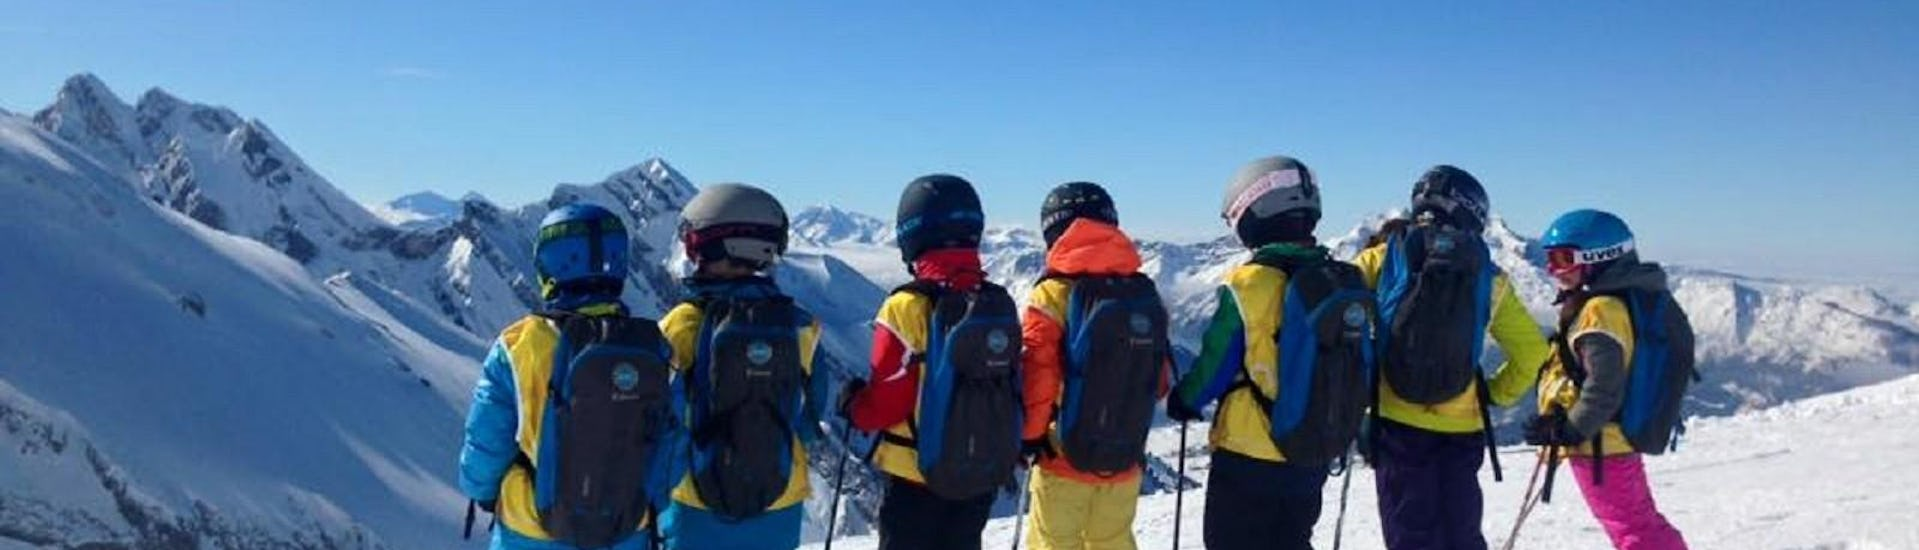 Freeriding Group for Kids (10-15 years) - Beginner